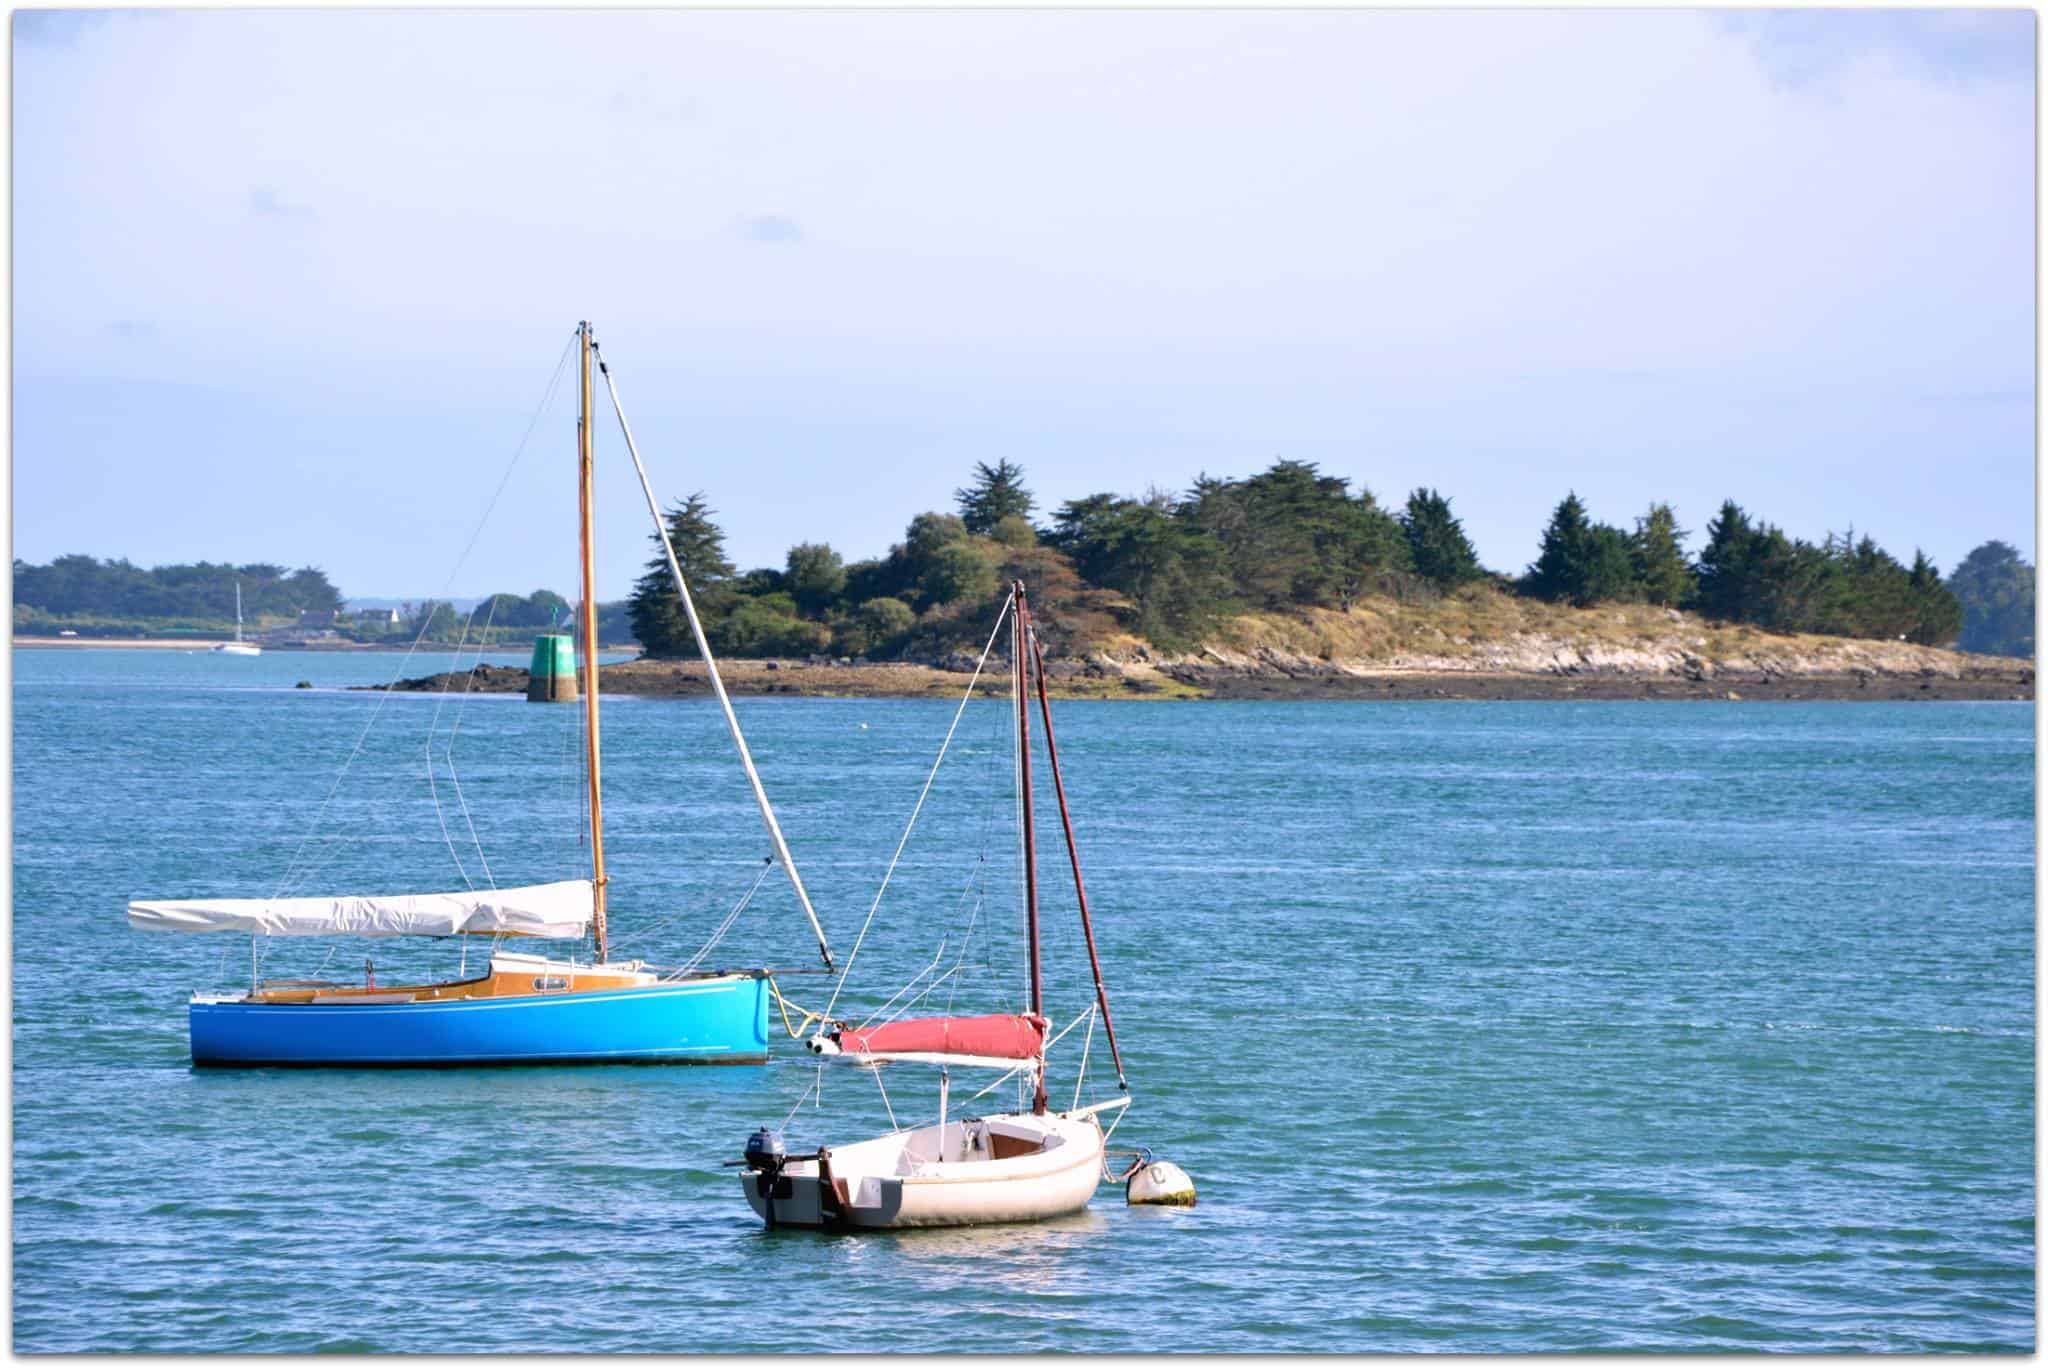 Golf of Morbihan - some of the plenty sailing boats